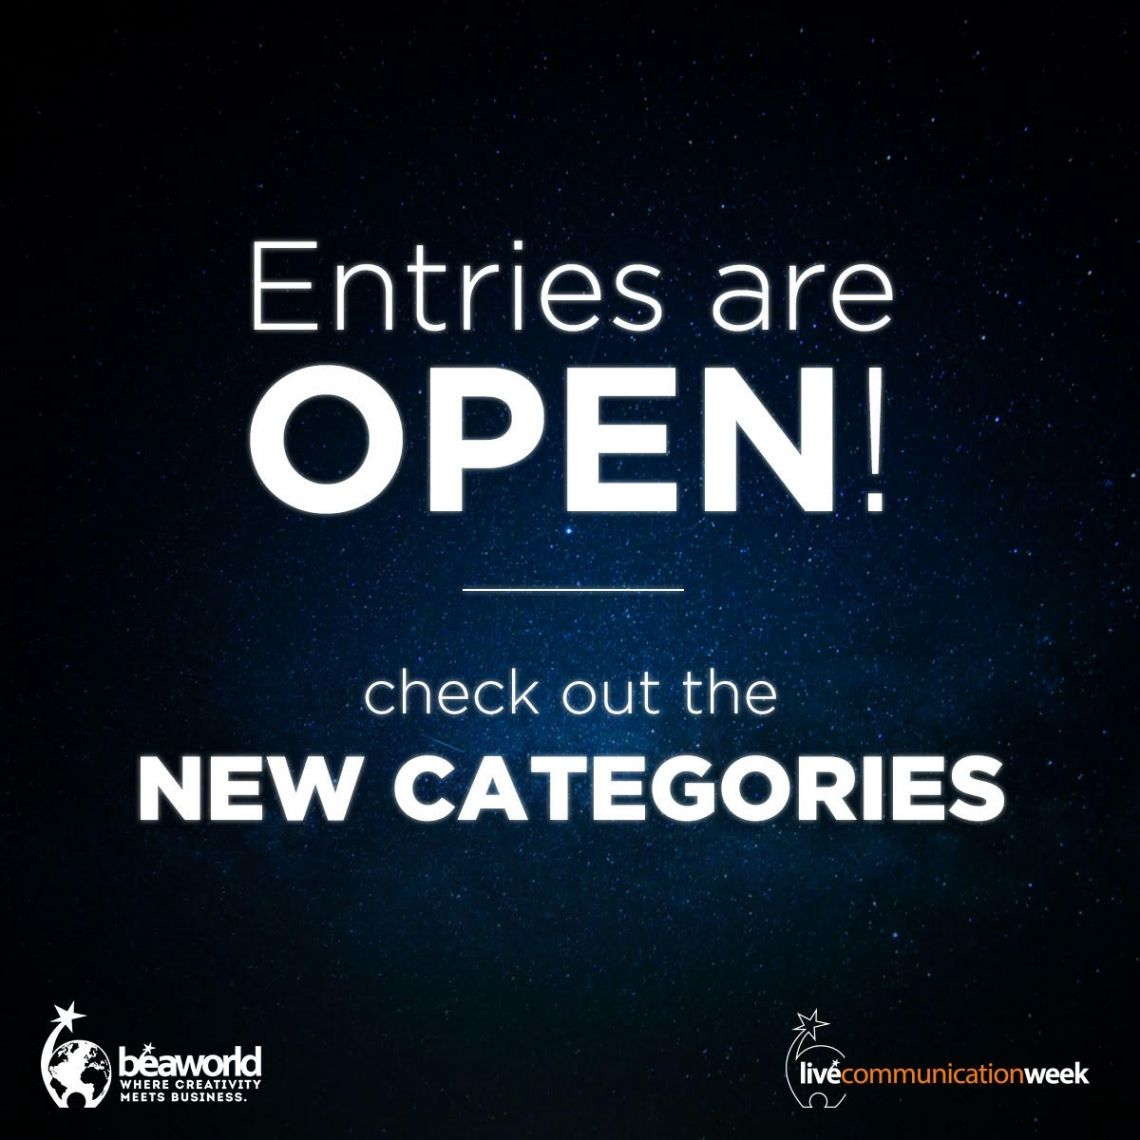 Best Event Awards: check out the new categories and apply now!